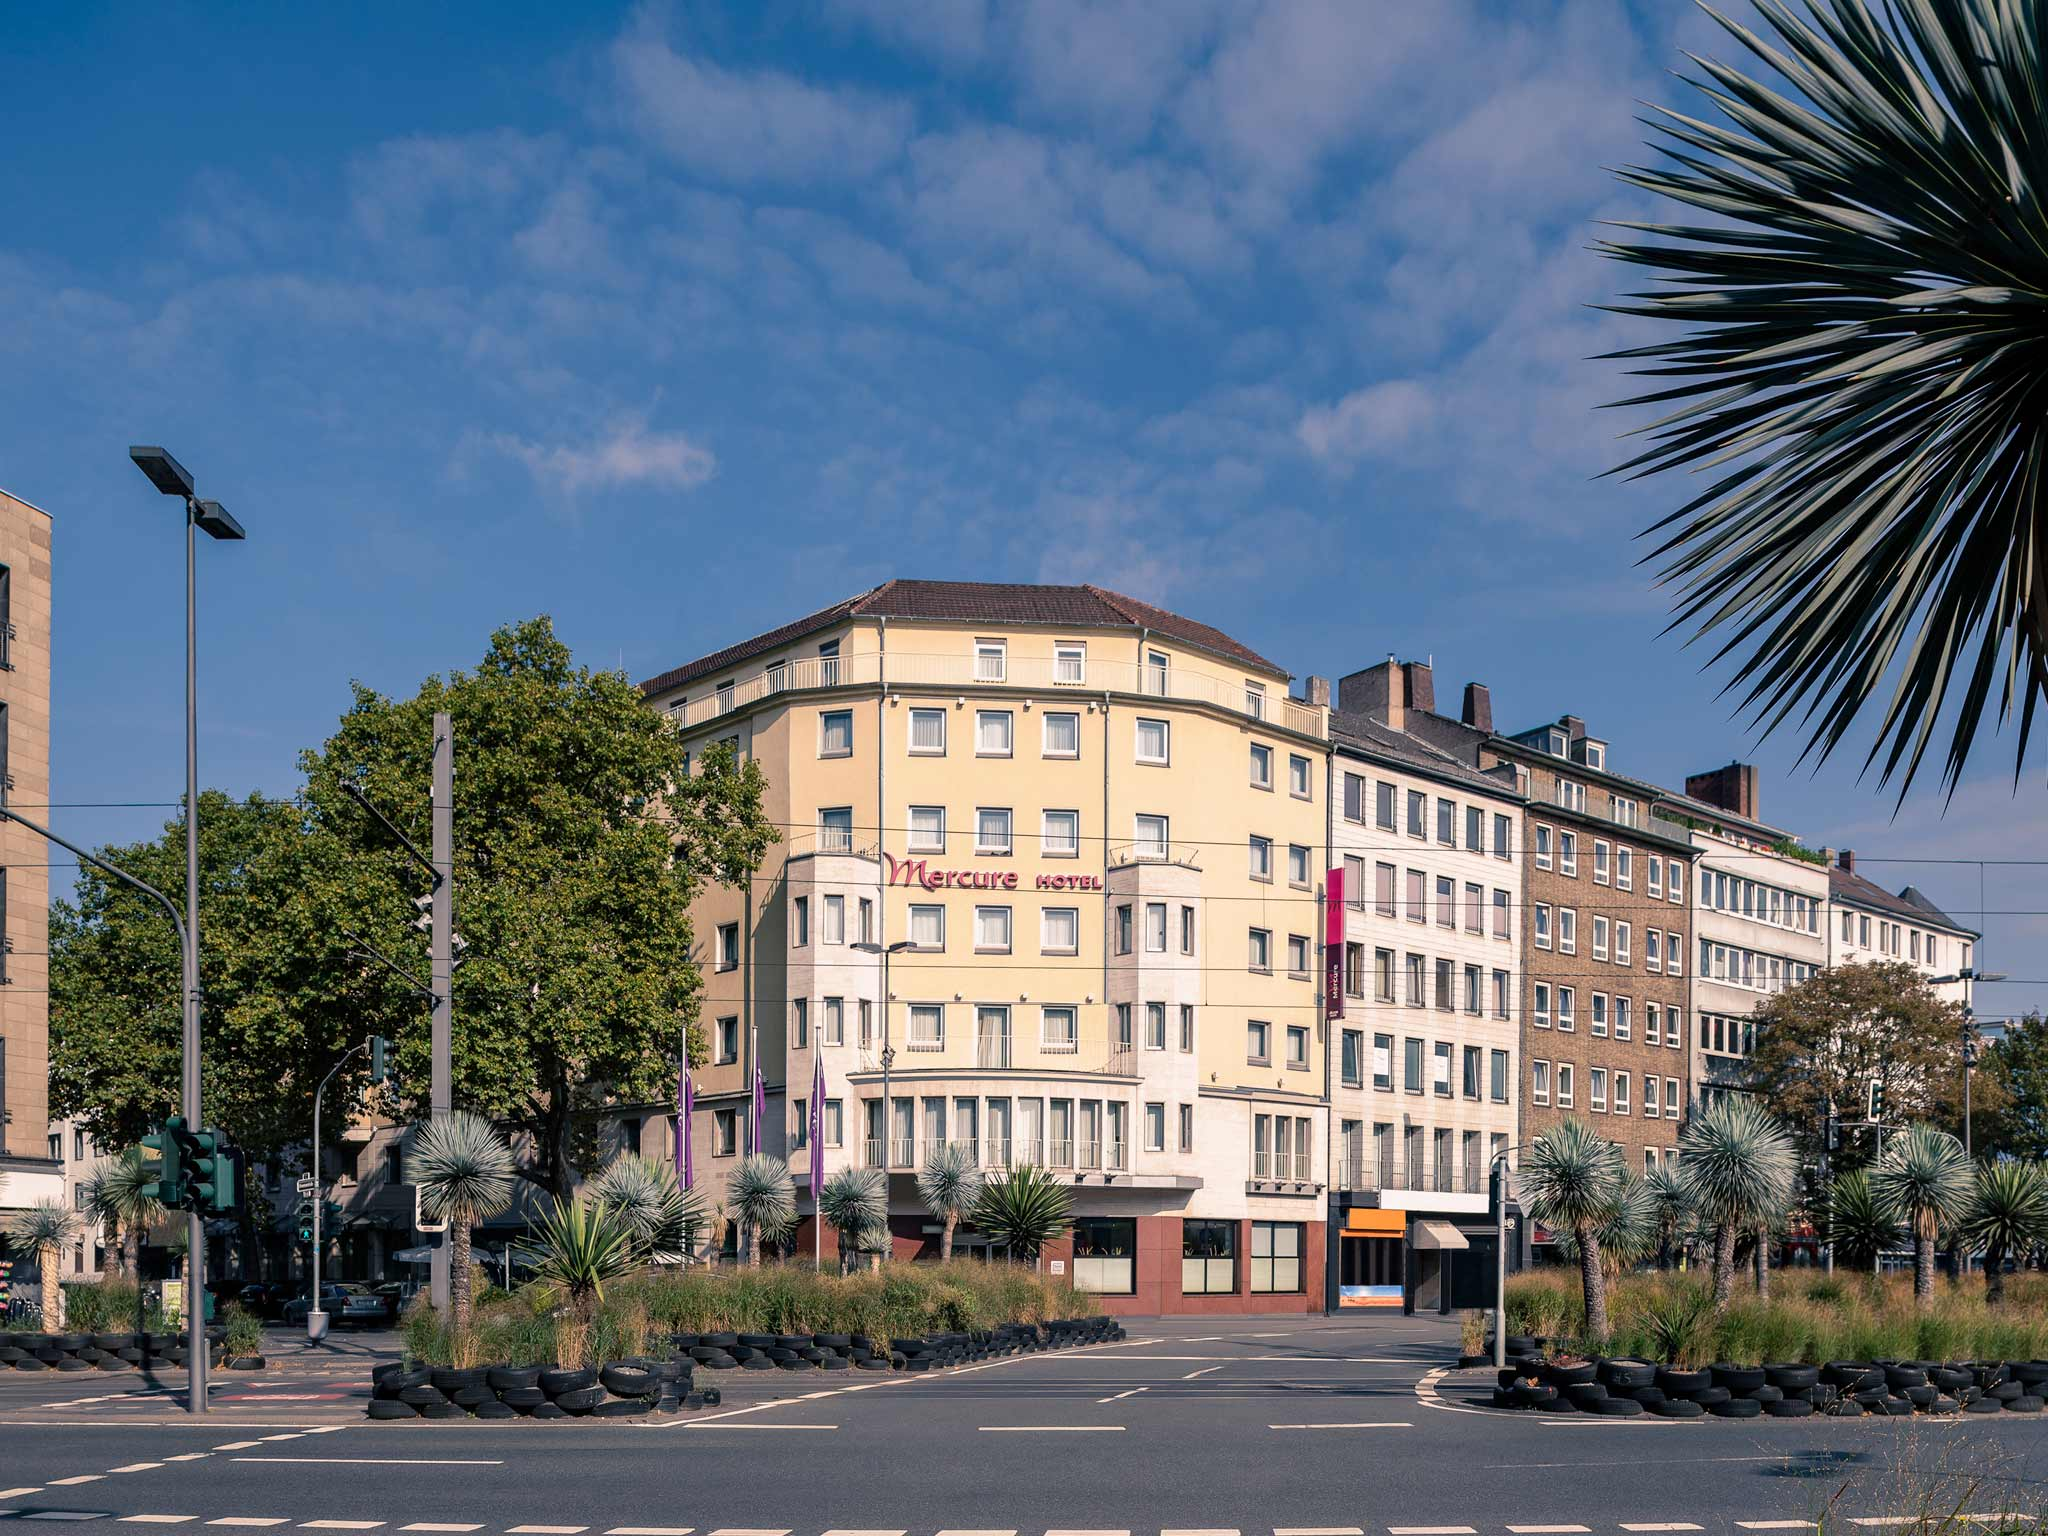 Hotel – Mercure Hotel Duesseldorf City Center